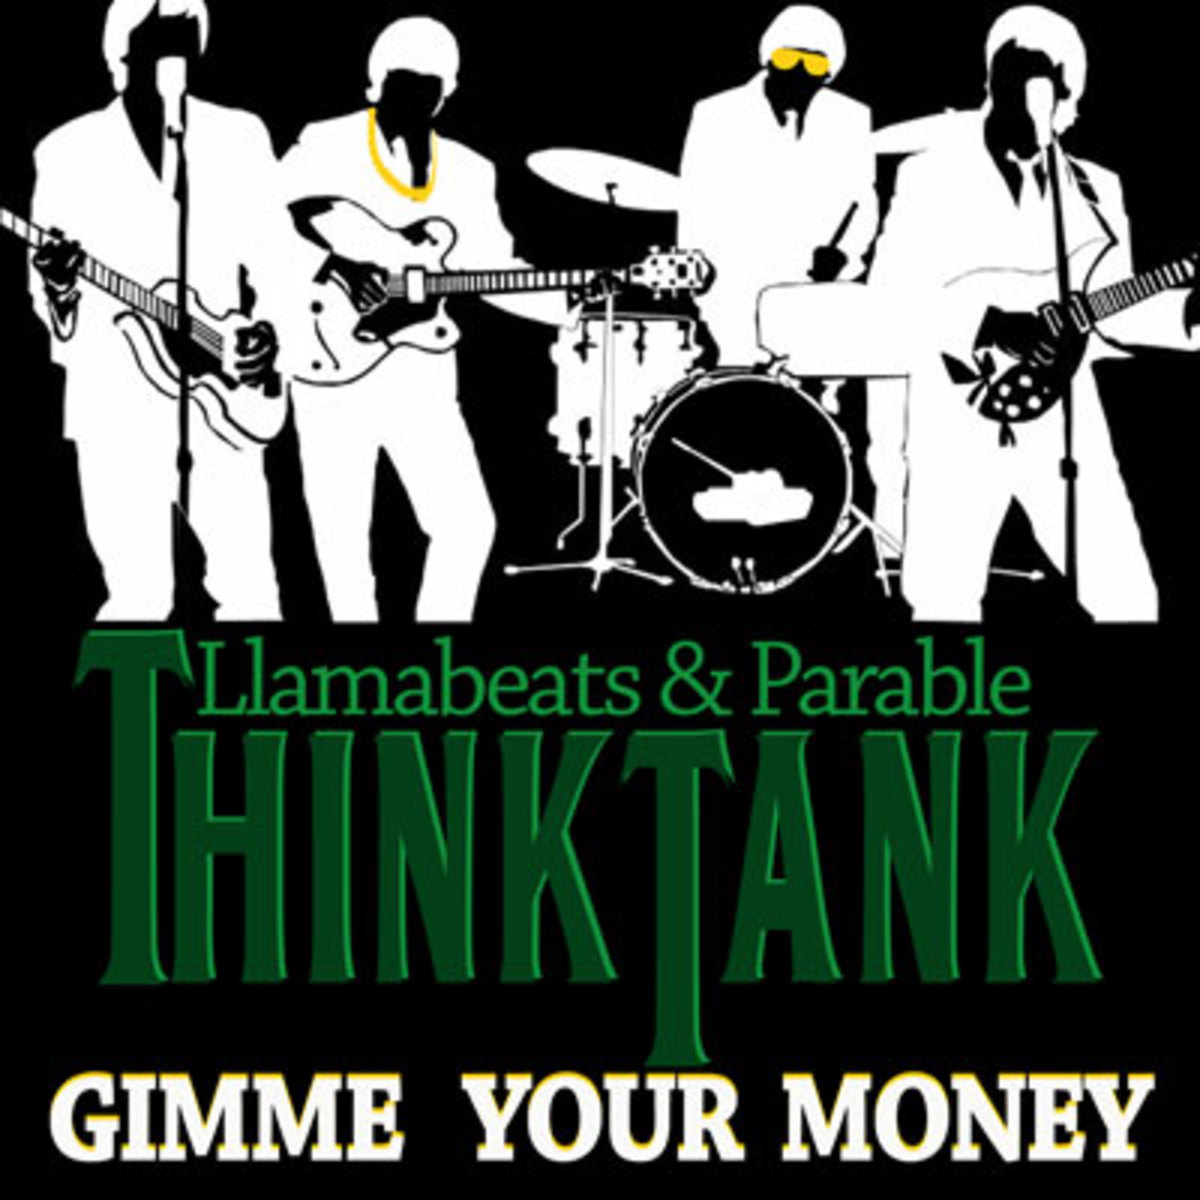 thinktank-gimmieyourmoney.jpg